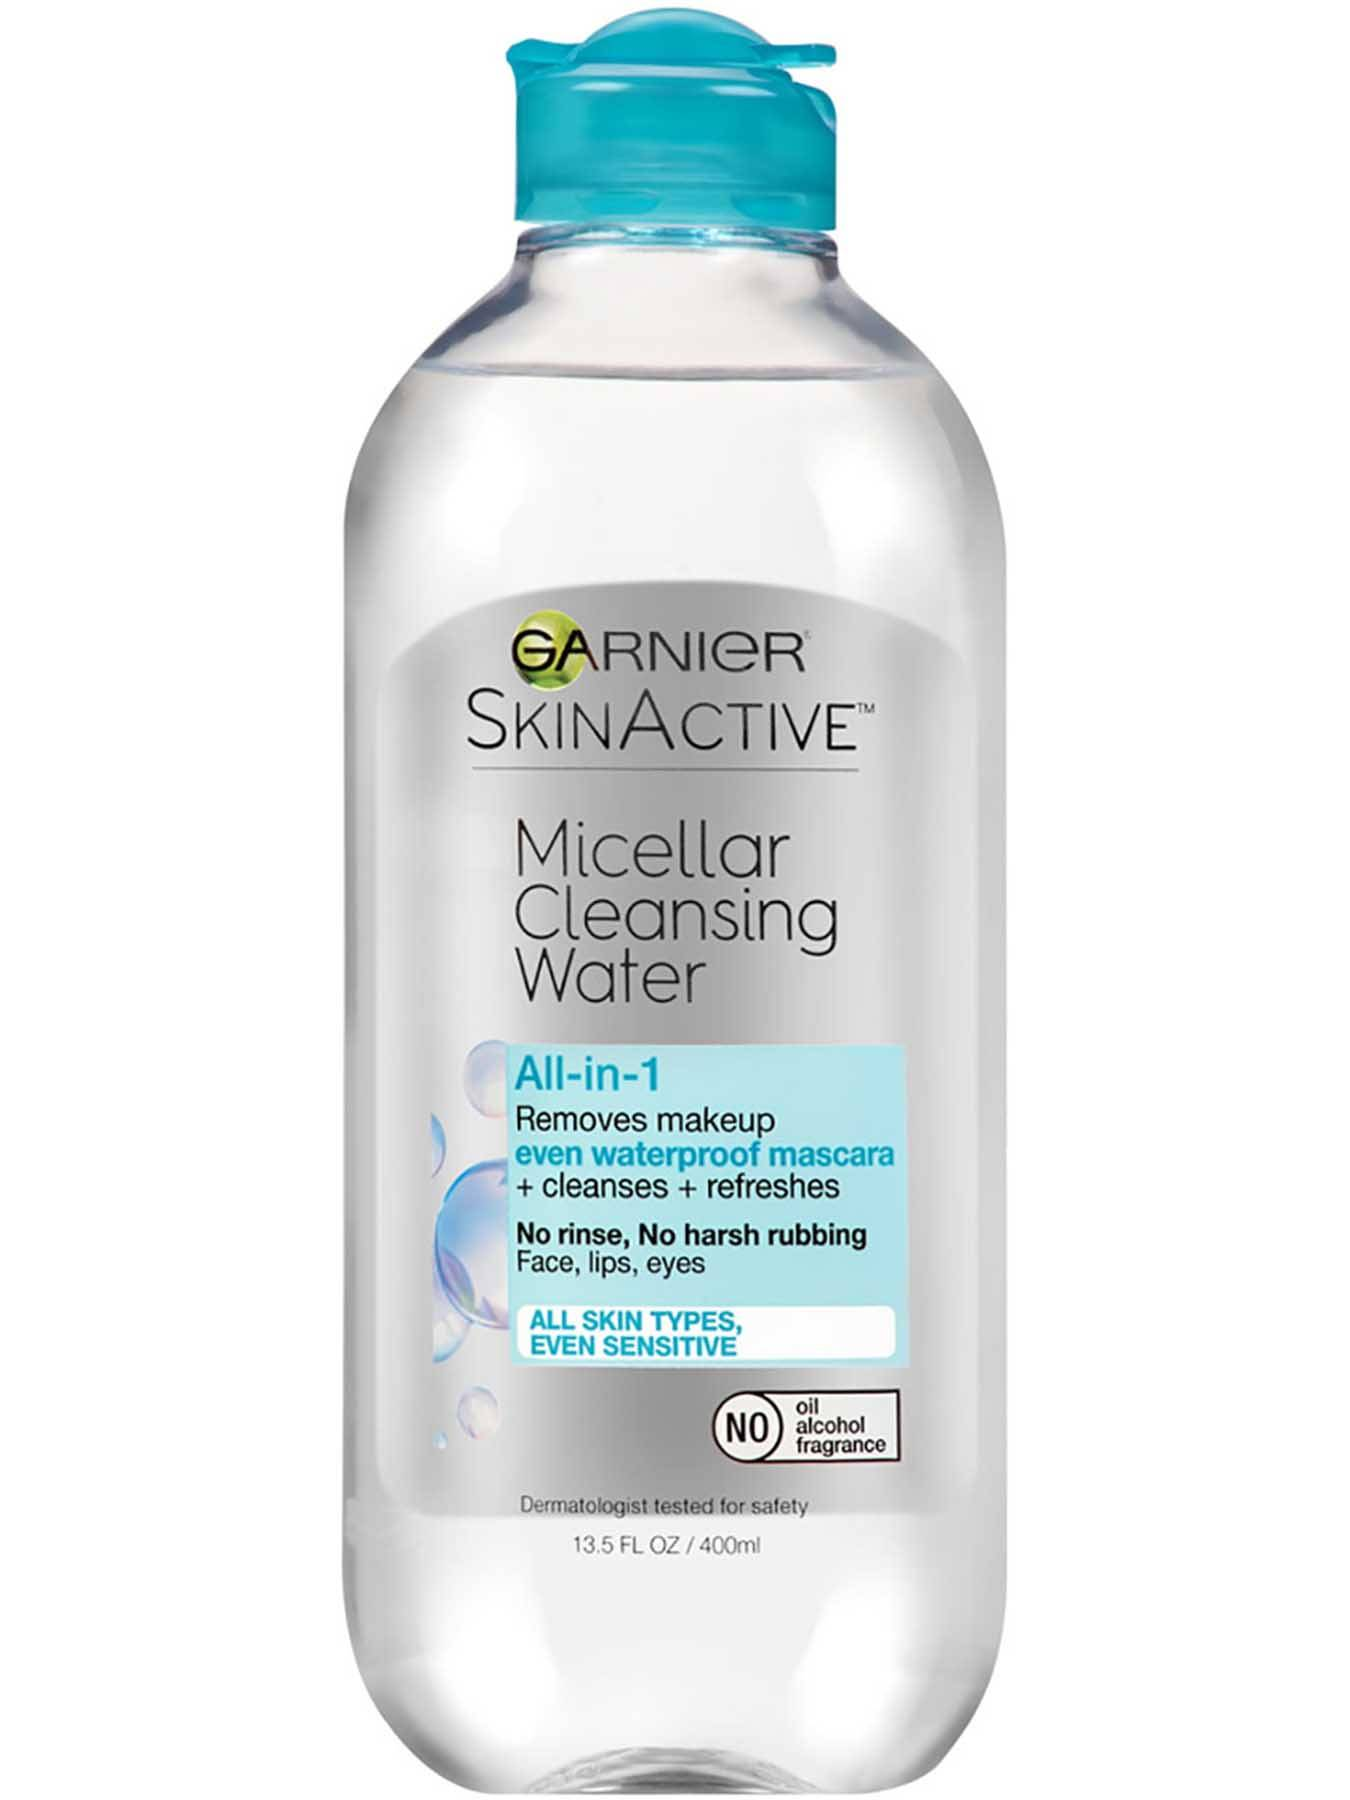 Garnier SkinActive Micellar Cleansing Water All-in-1  Cleanser &  Waterproof Makeup Remover for All Skin Types, Even Sensitive